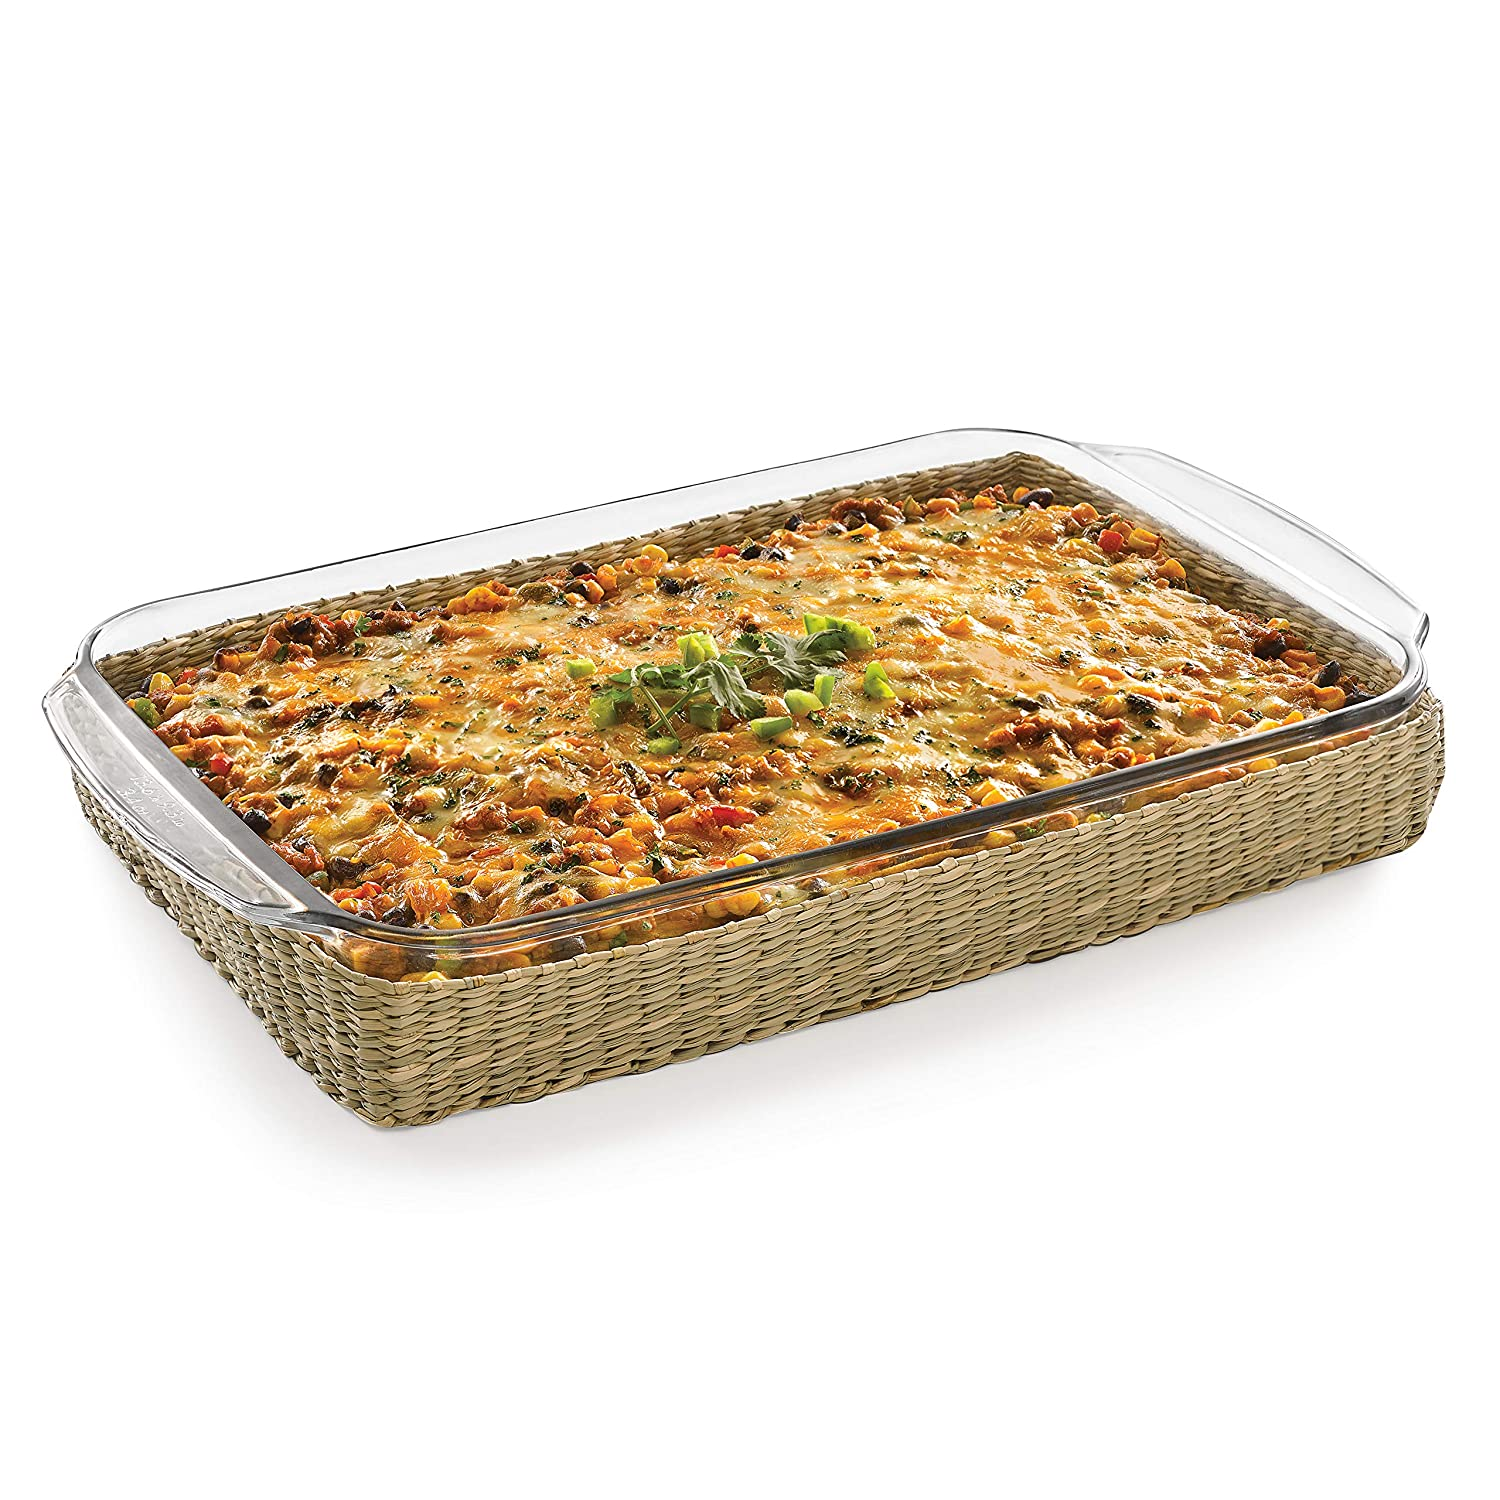 Libbey Bakers Basics Glass Casserole Baking Dish with Basket, 9-inch by 13-inch